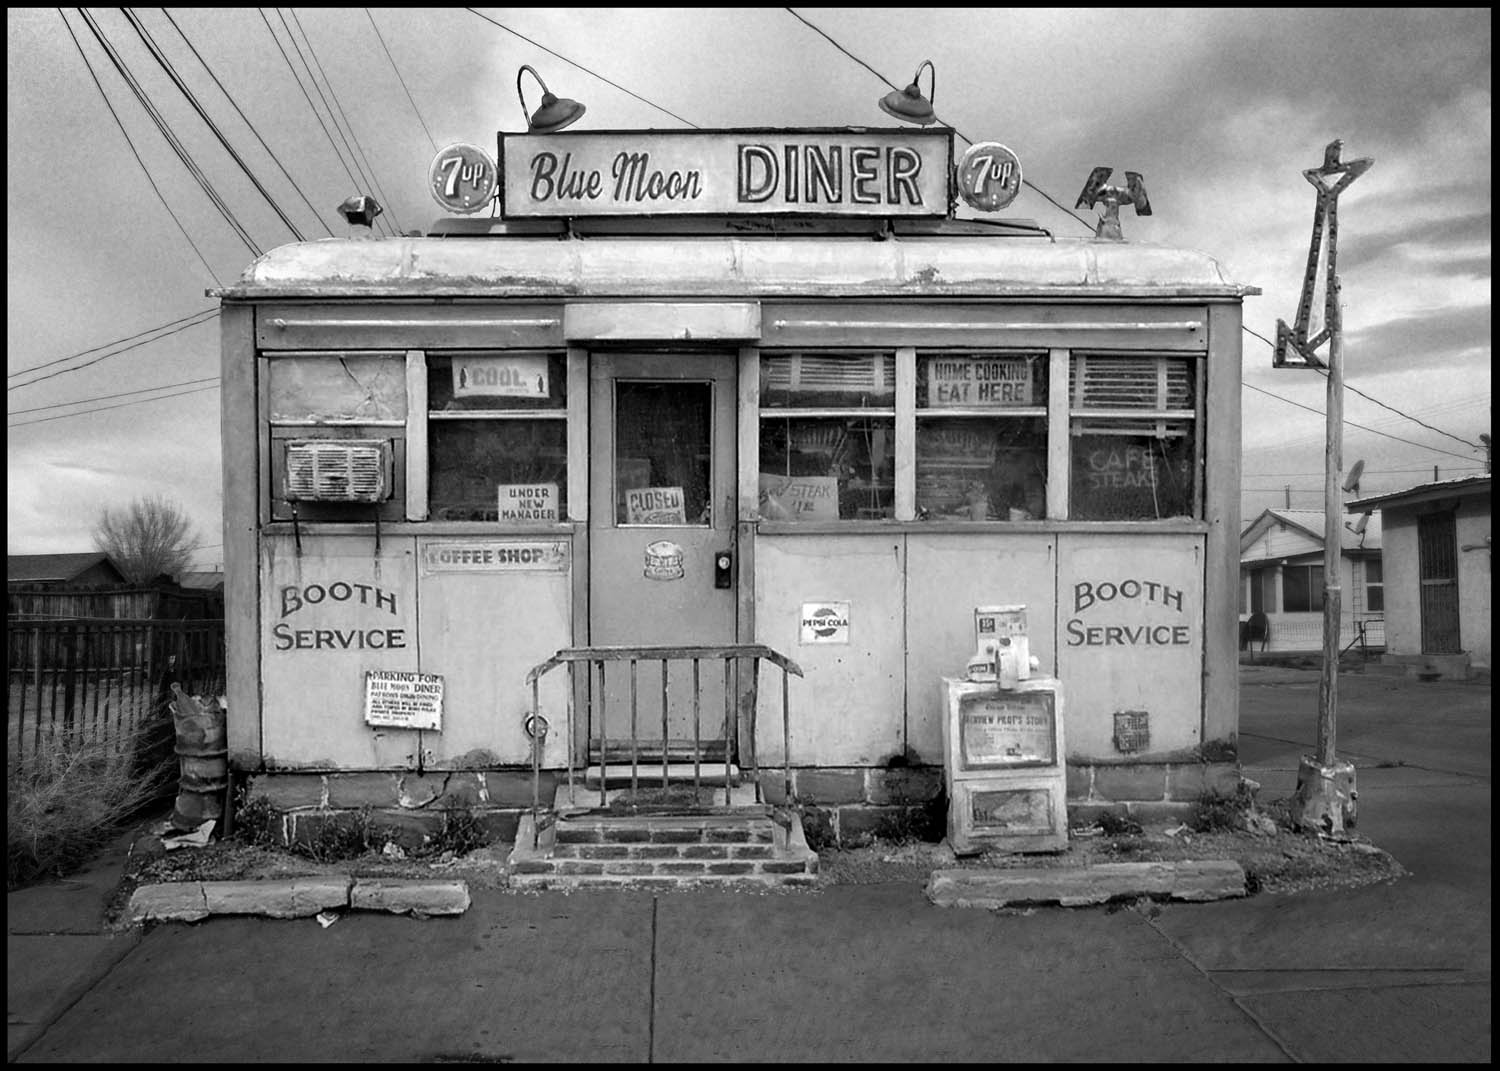 Poem About Diner Miriam S Well Poetry Land Art And Beyond